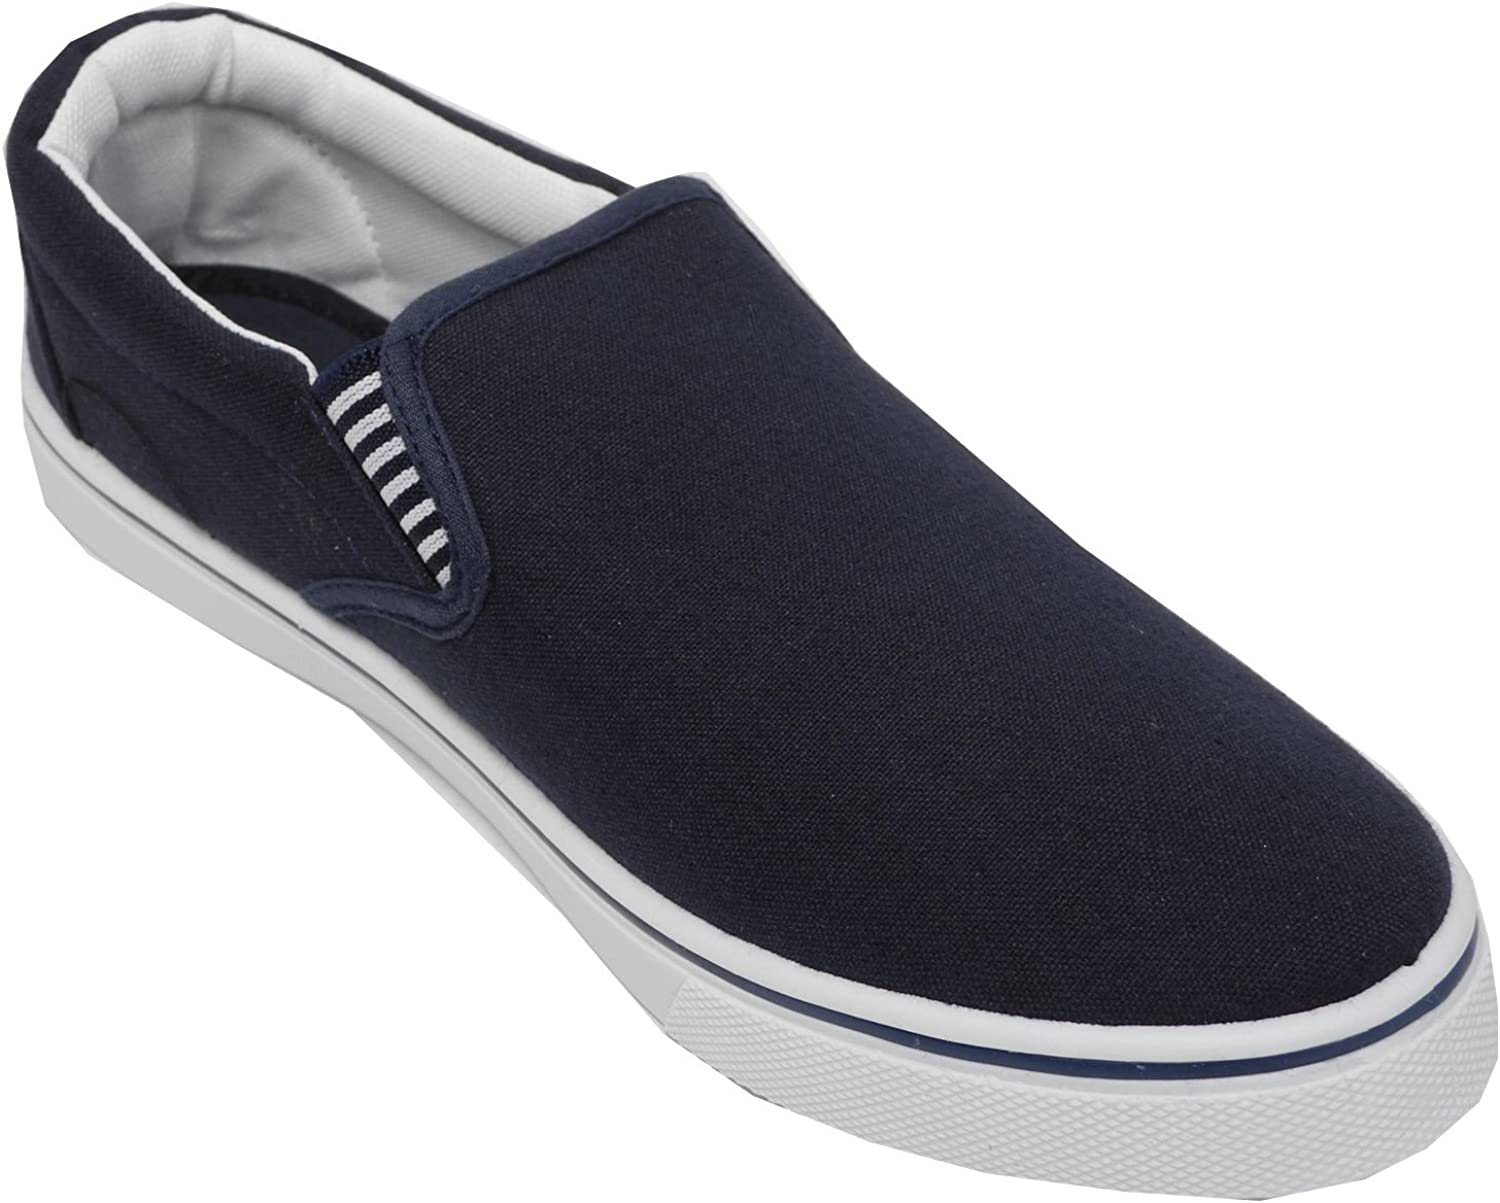 Sizes 6,7,8,9,10,11,12,13 Red Fish Mens Blue Slip On Casual Shoe